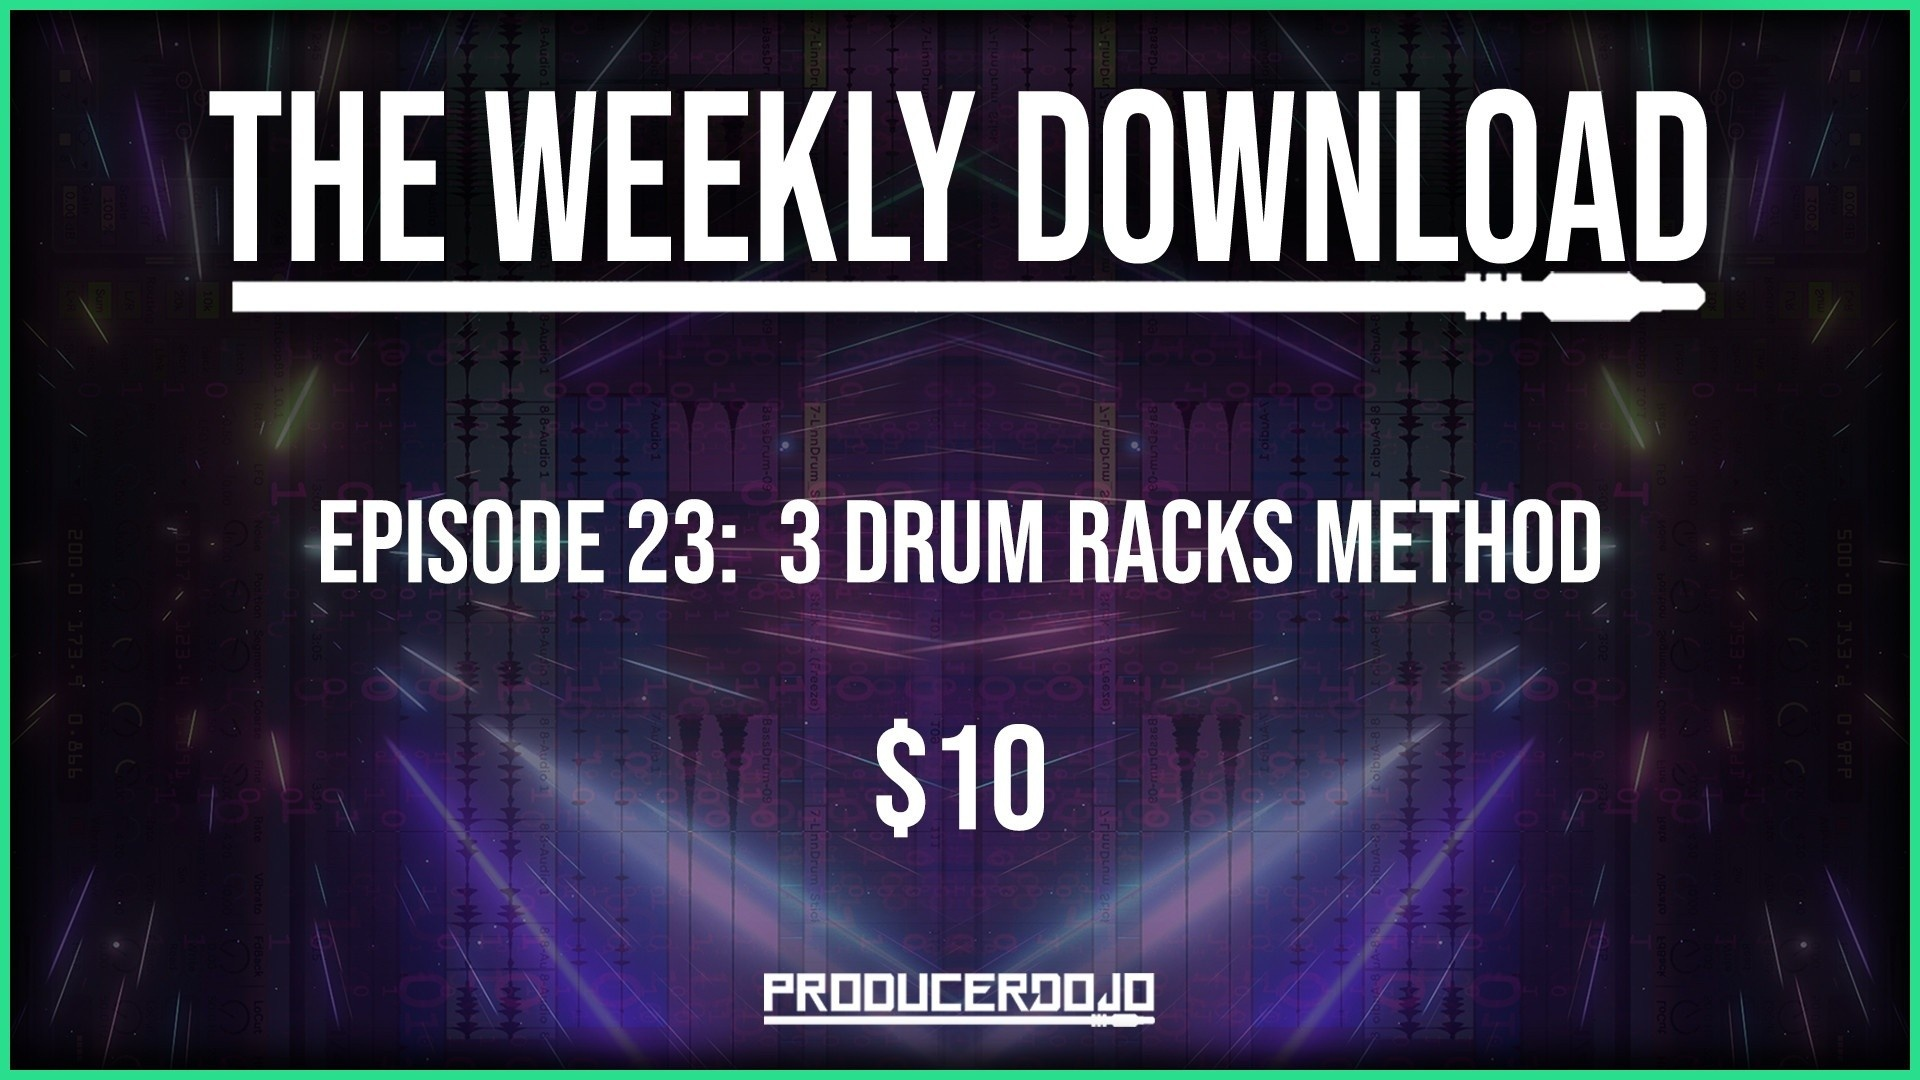 Music production tutorials for Ableton sound design and EDM production